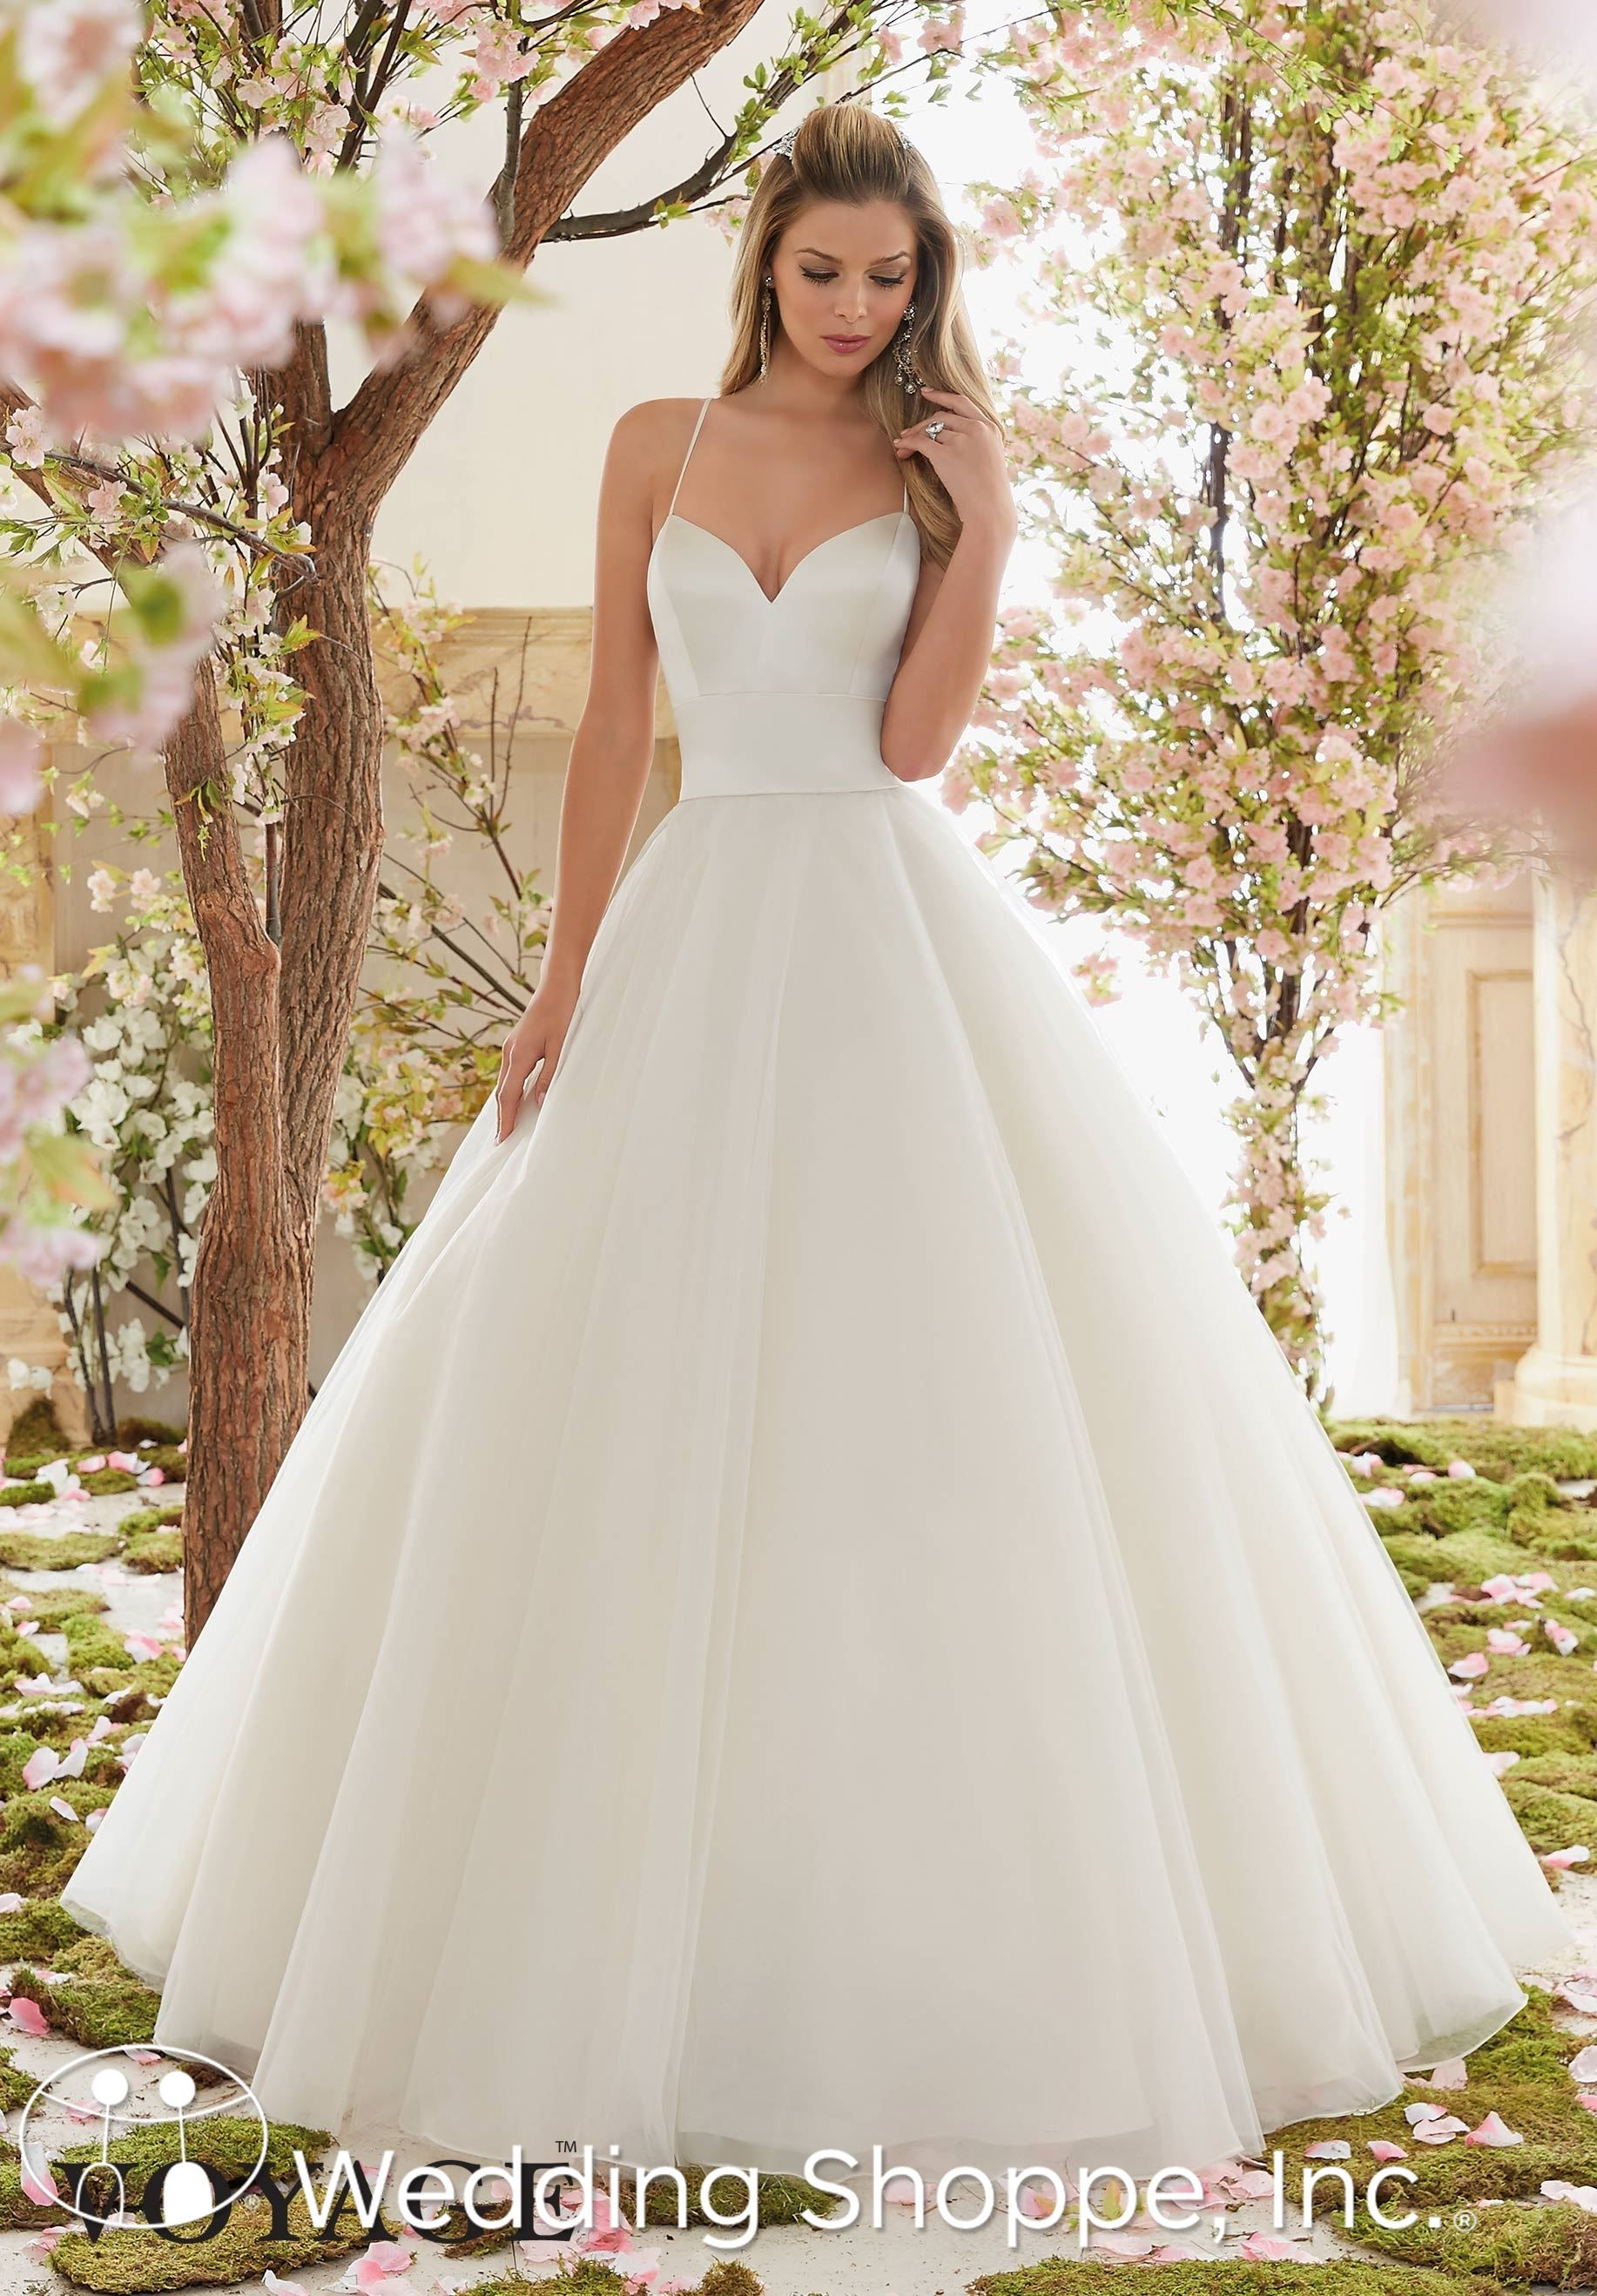 Voyage By Mori Lee Bridal Gown 6831 Ball Gown Wedding Dress Ball Gowns Wedding Tulle Wedding Dress Ballgown